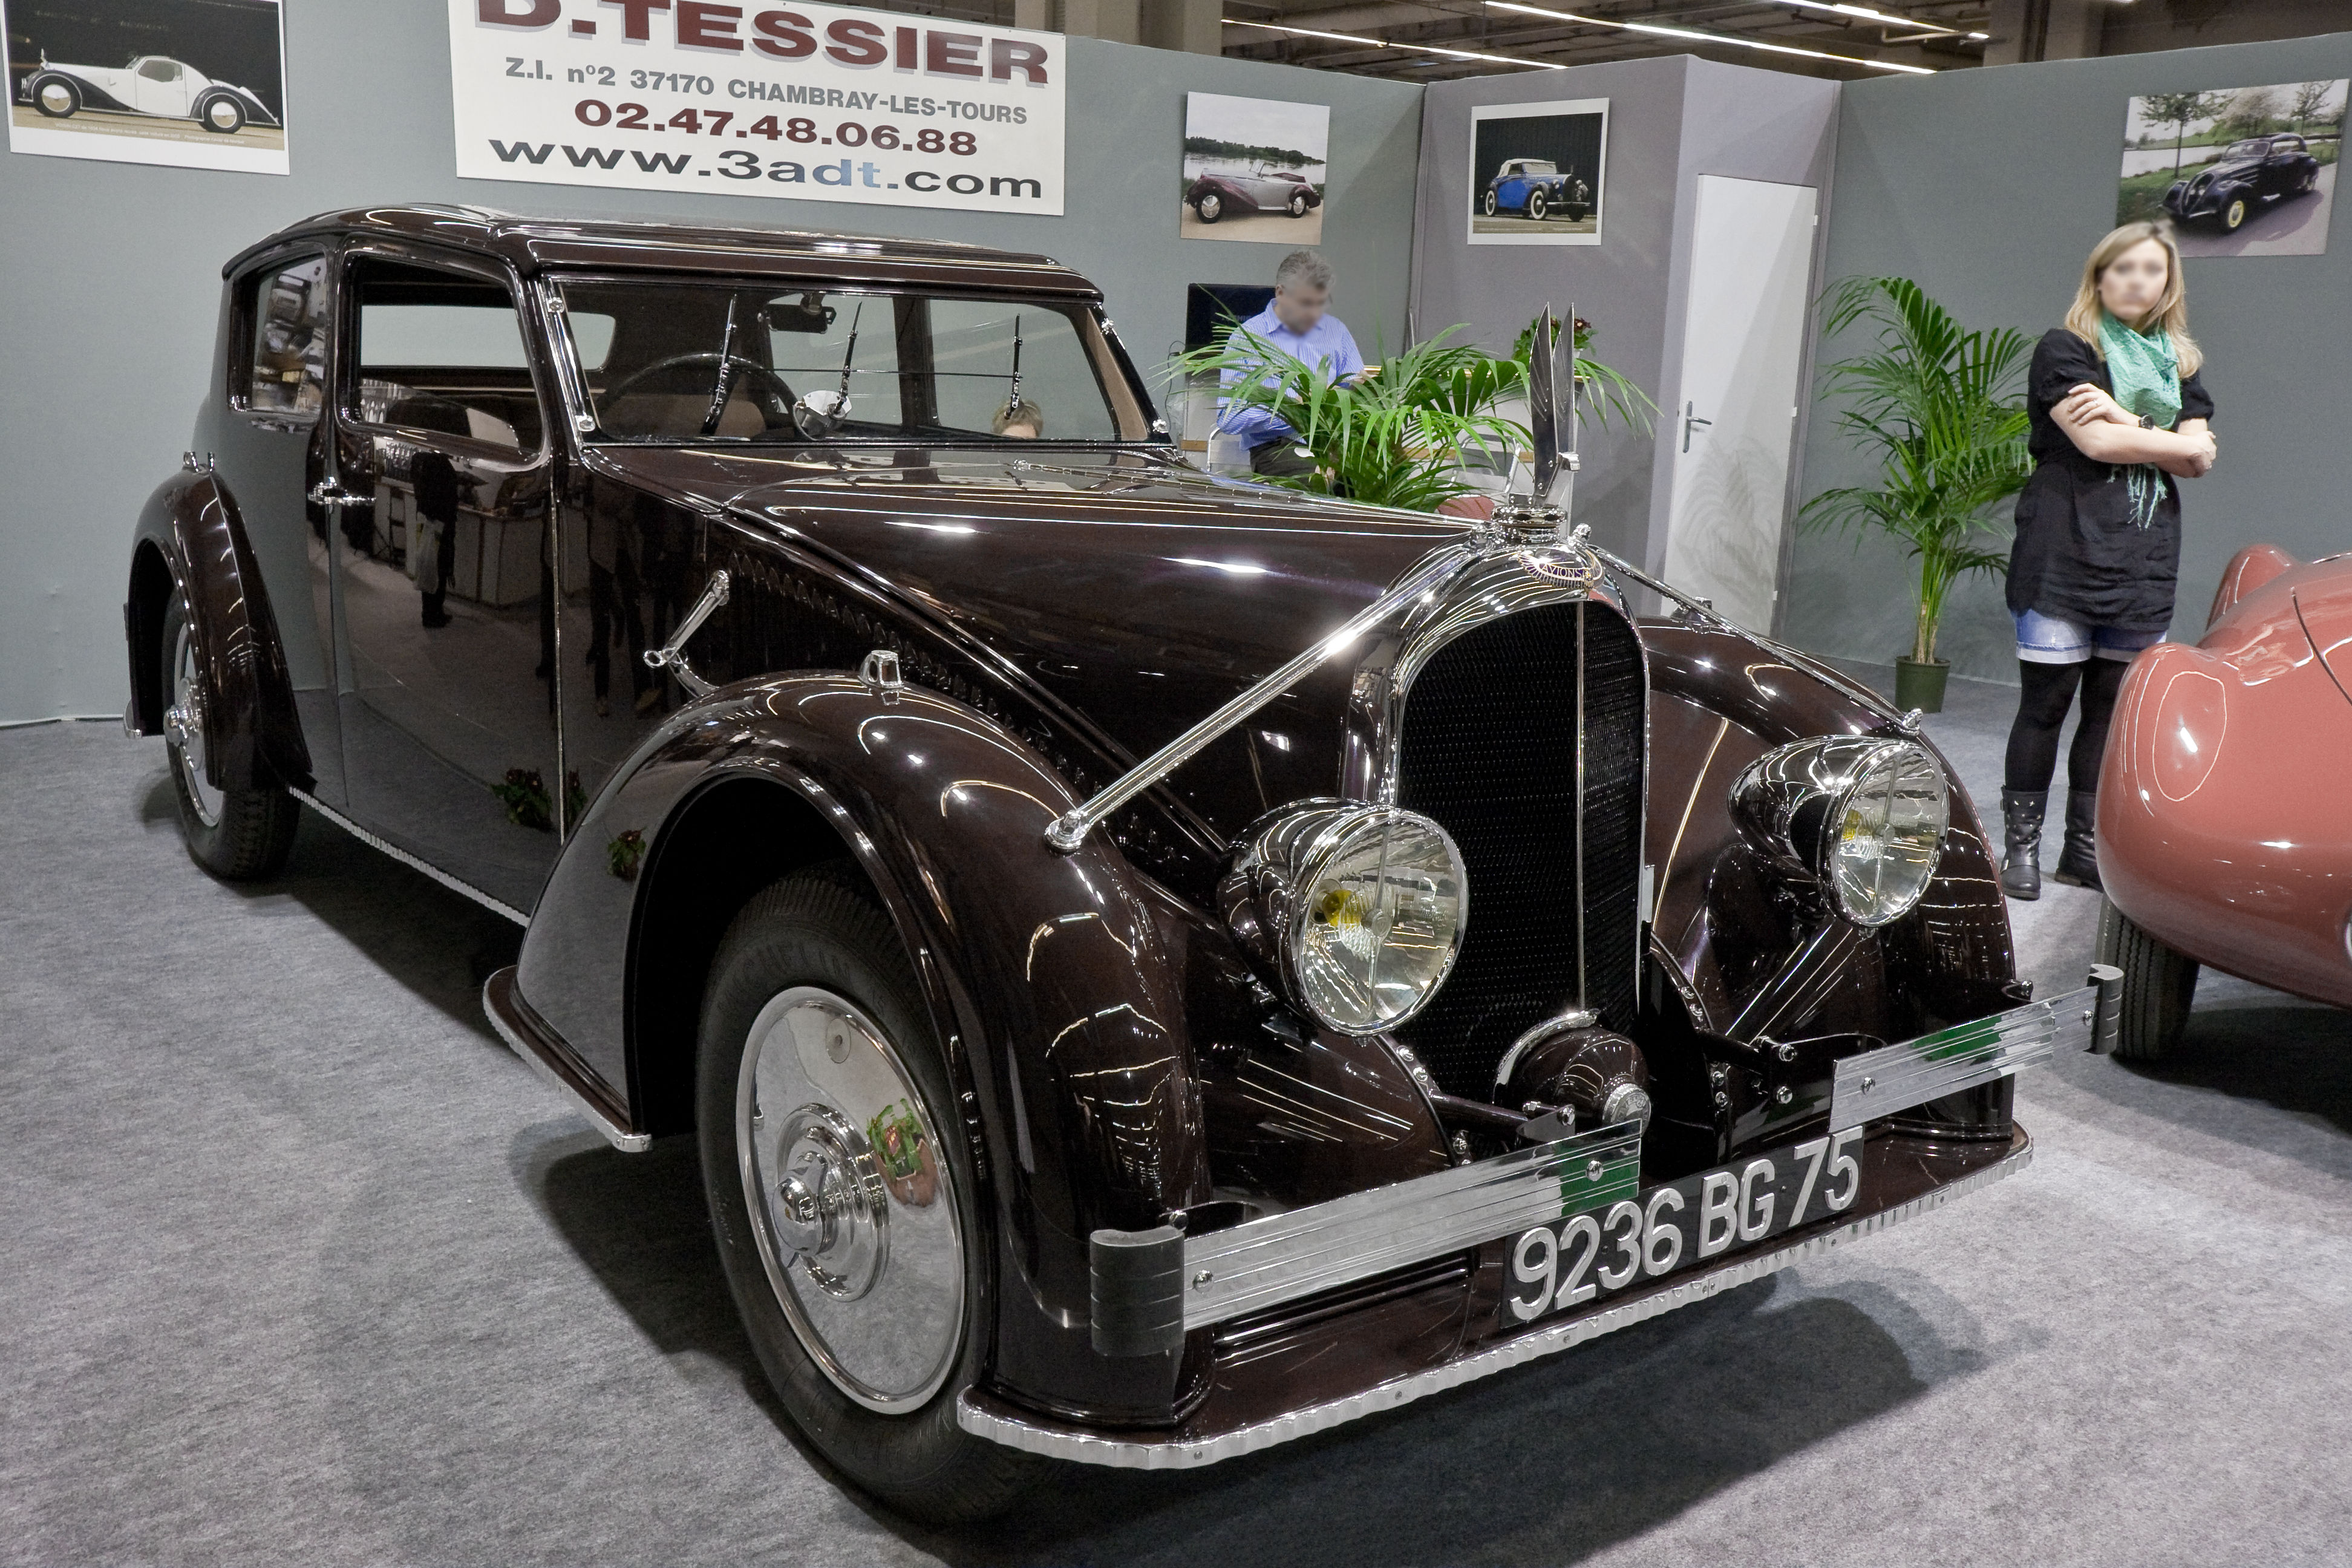 Voisin c28 photo - 1